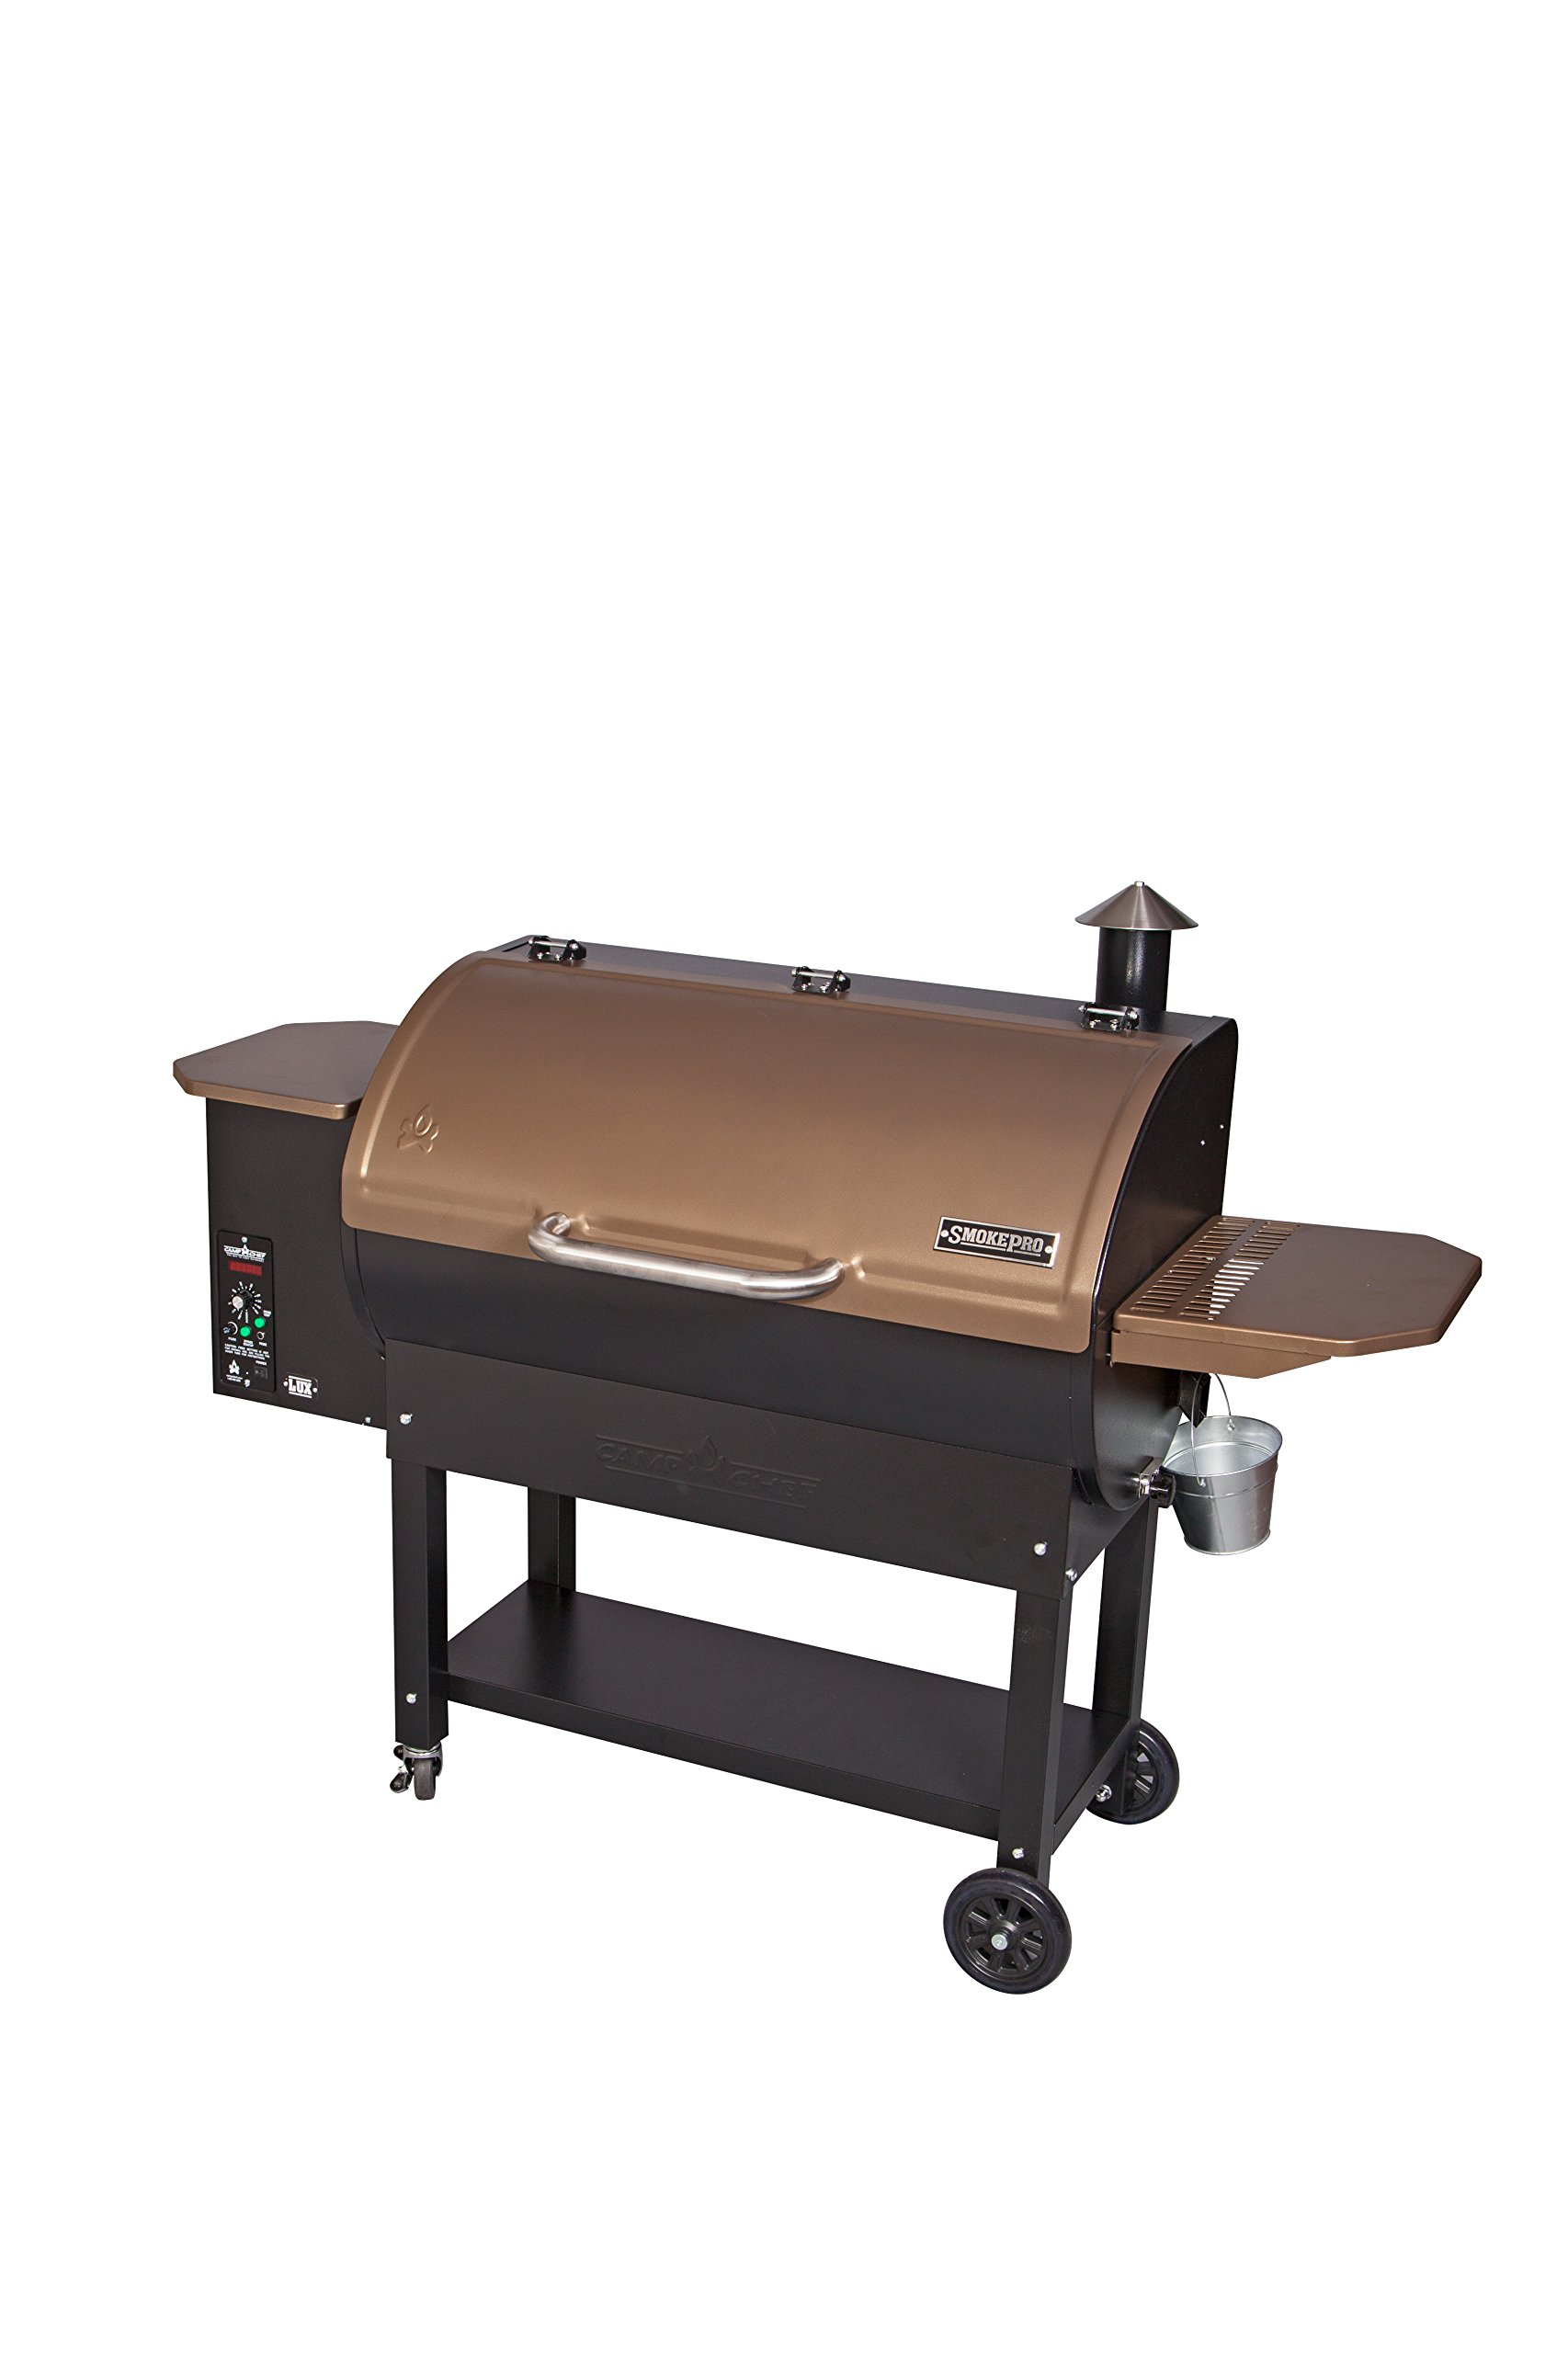 Camp Chef SmokePro LUX Wood Pellet Grill Smoker, Bronze (PG36LUXB) by Camp Chef (Image #3)